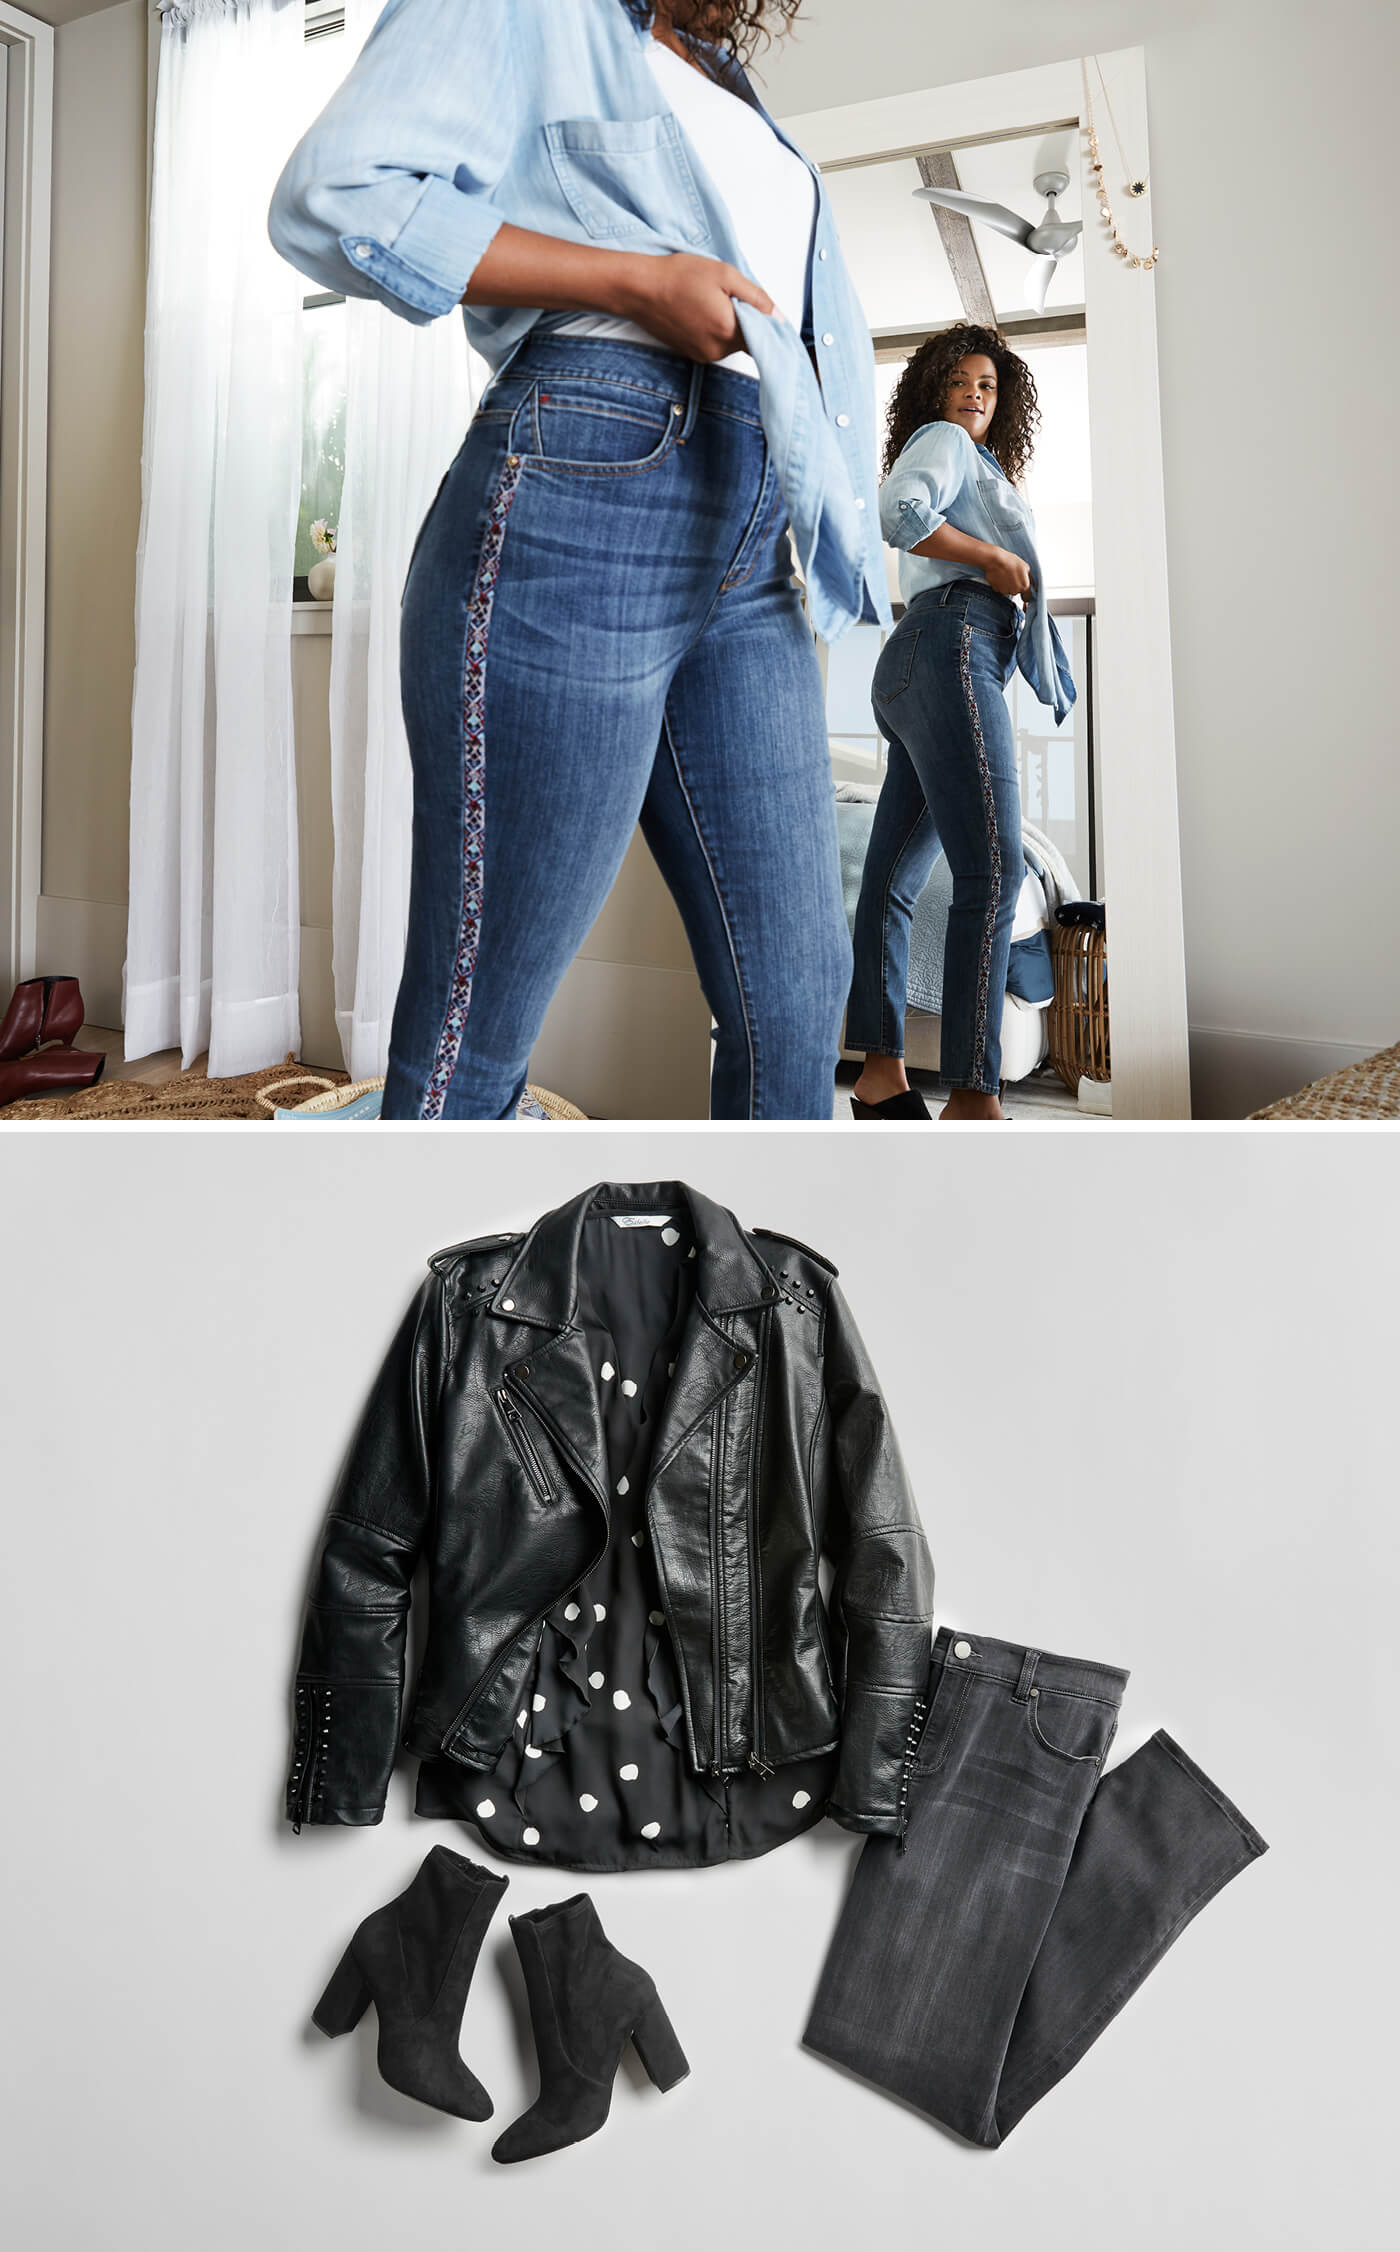 3b3d0e6d64 Black. The appeal of black jeans is undeniable-these ...